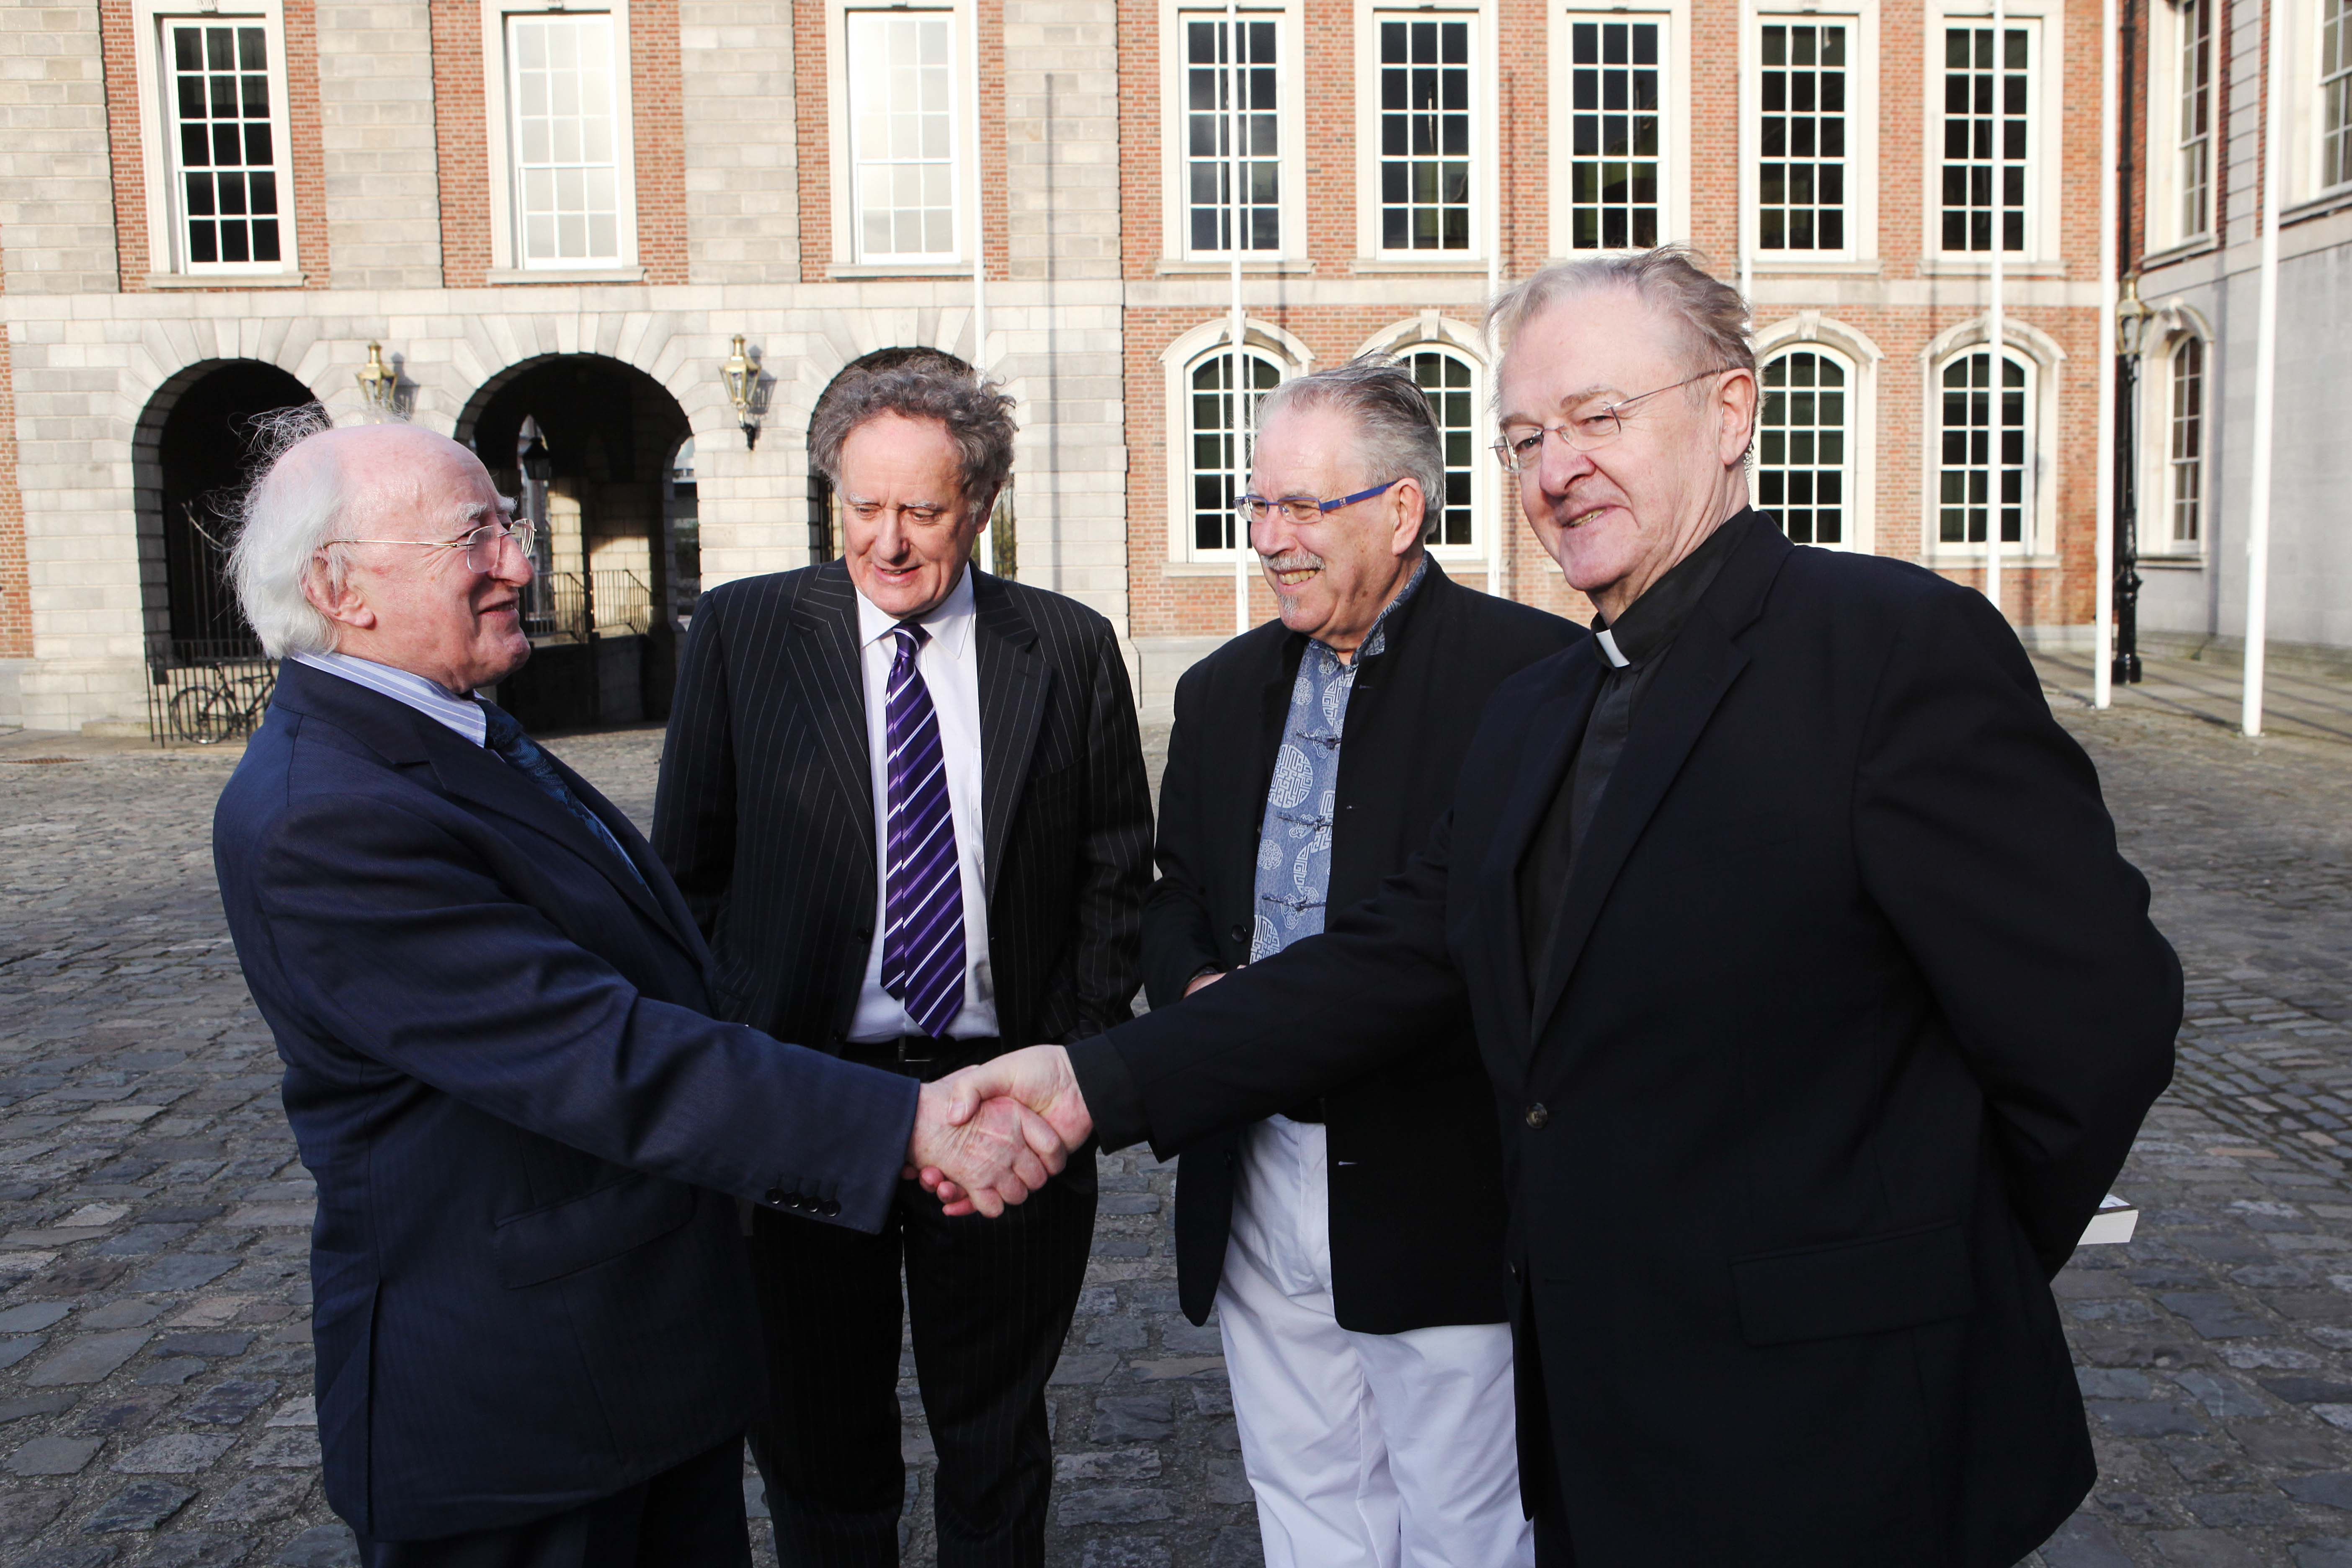 FR. SEAN AND MICHAEL HIGGINS